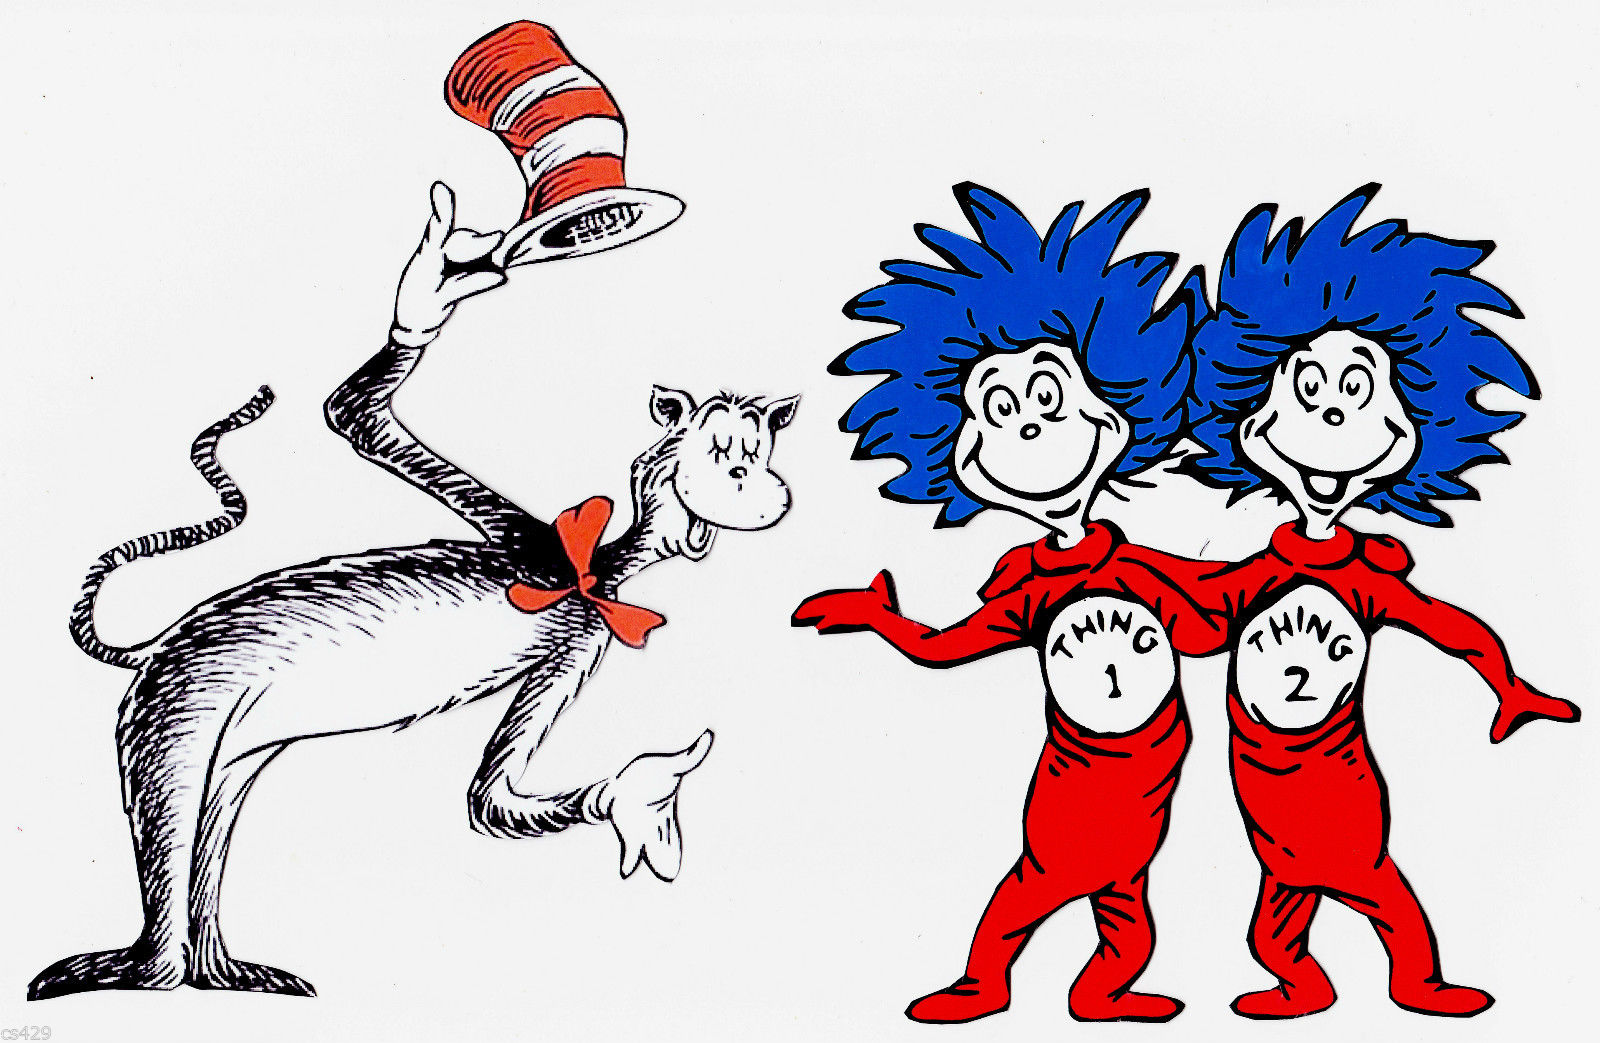 Dr Seuss The Cat In The Hat wallpapers Video Game HQ 1600x1043